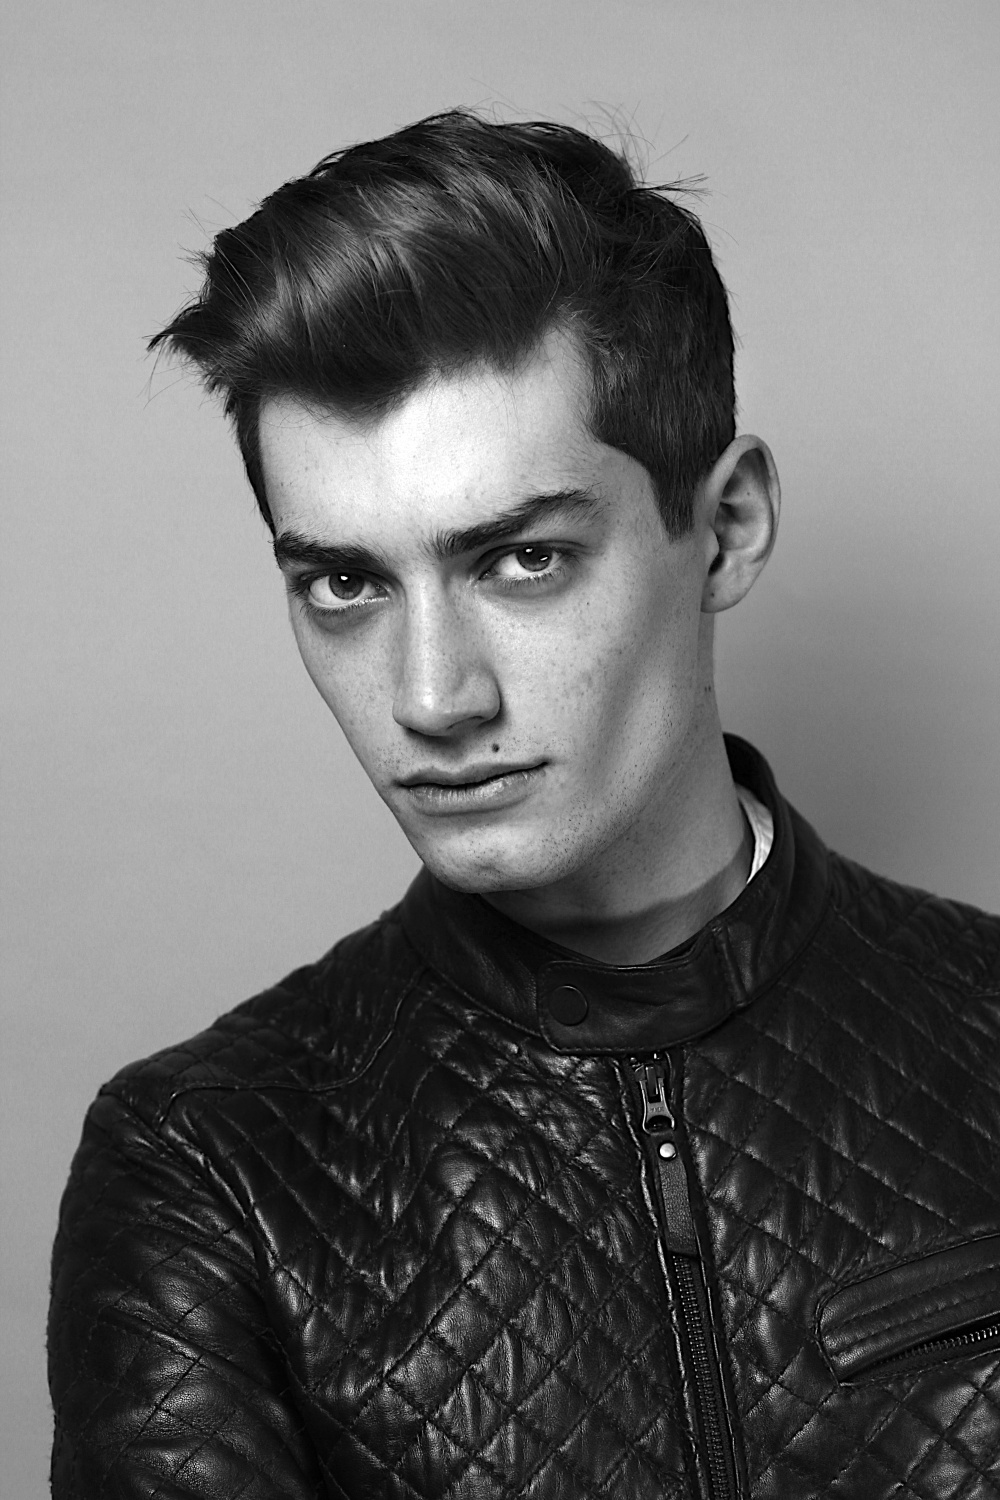 Michael Knowles scouted and photographed by Cesar Perin